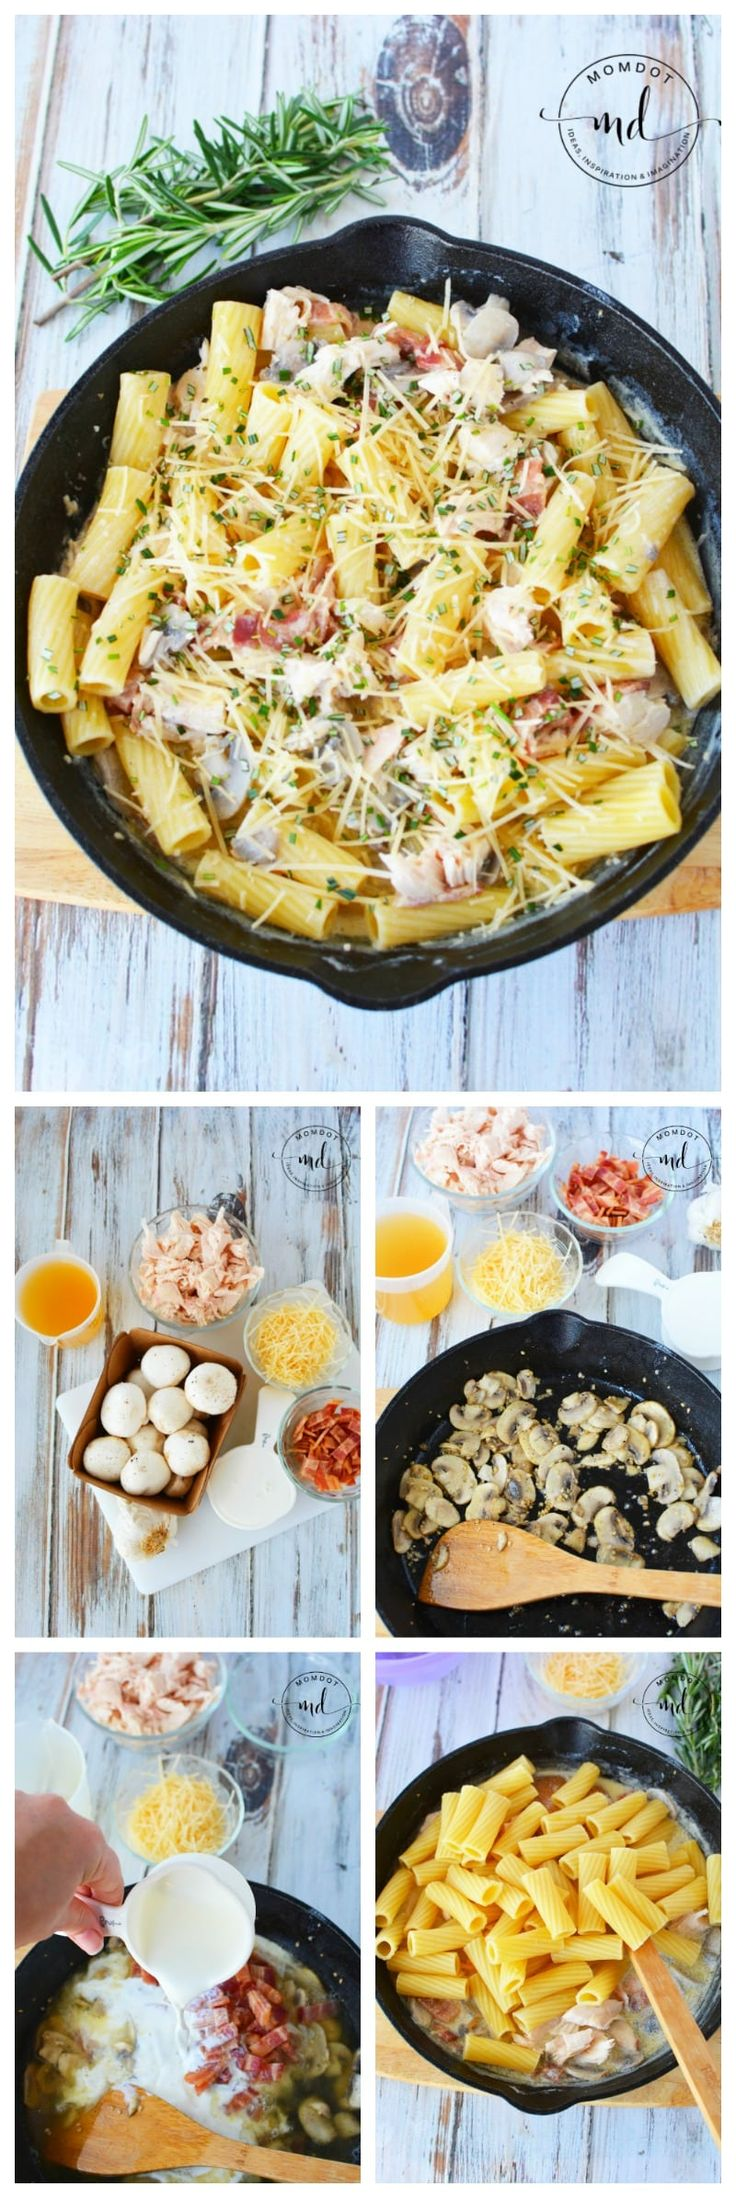 Leftover Turkey Pasta is a great Turkey Leftover Dish to use what you have from Thanksgiving. Do not let that delicous turkey go to waste and it wont with this amazing dinner recipe #thanksgiving #recipe #dinner #turkey